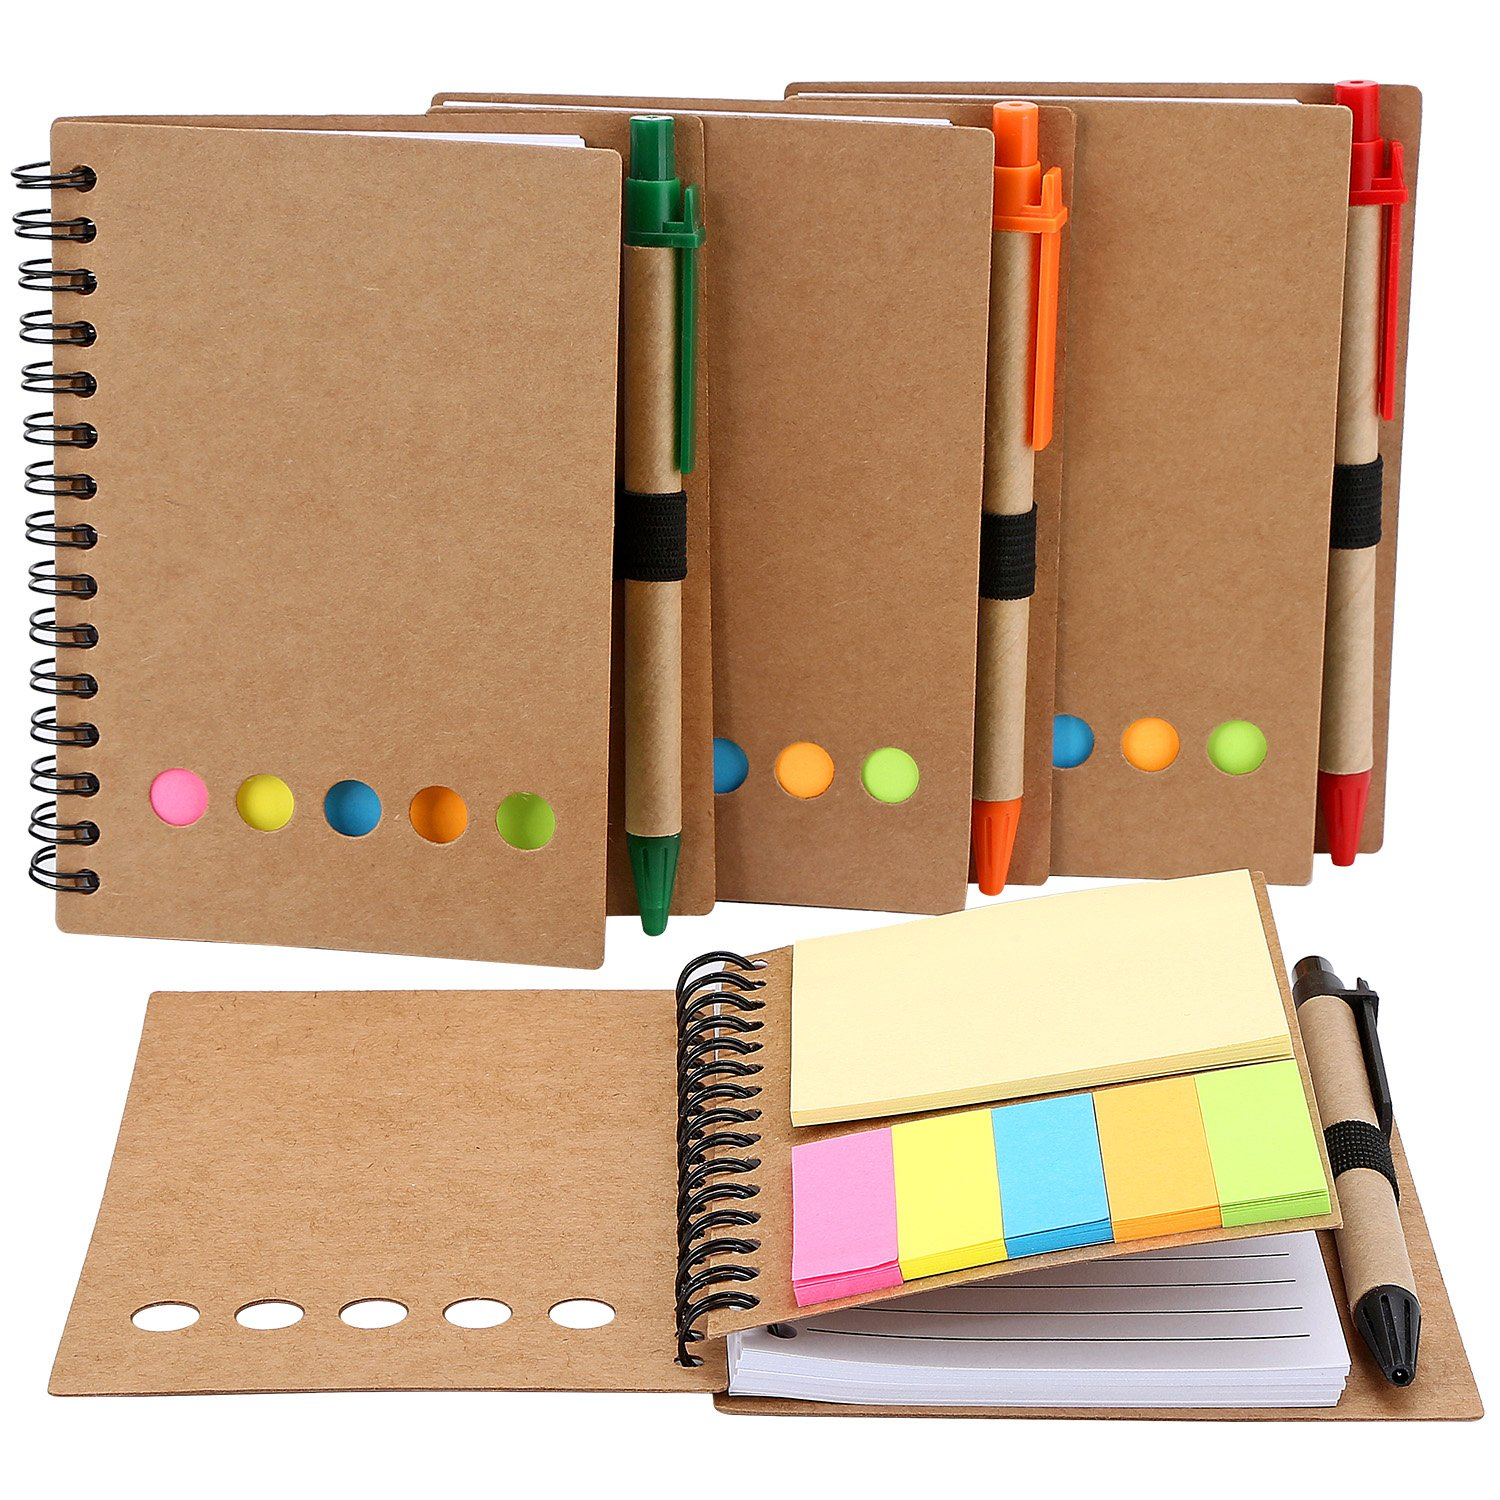 TOODOO 4 Packs Spiral Notebook Lined Notepad with Pen in Holder and Sticky Notes, Page Marker Colored Index Tabs Flags (Medium,Brown Cover)